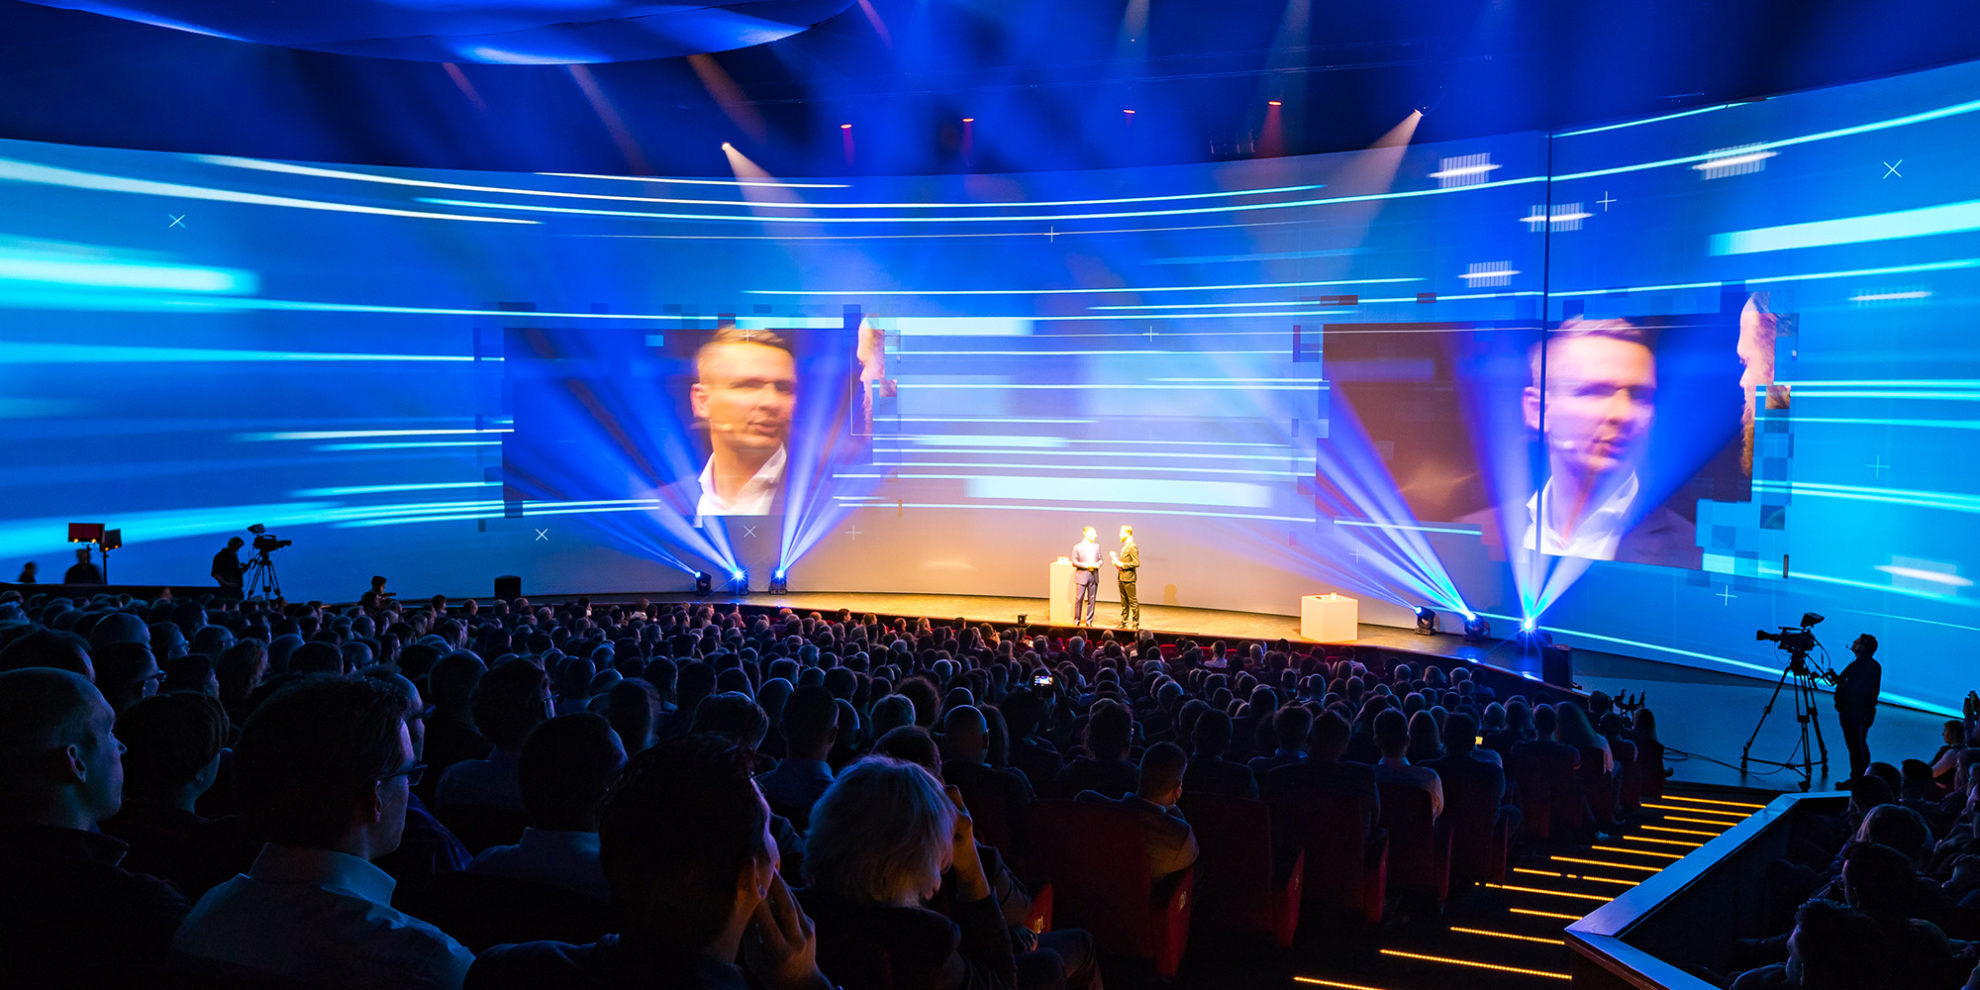 presentation in a large venue with 180 degrees screen